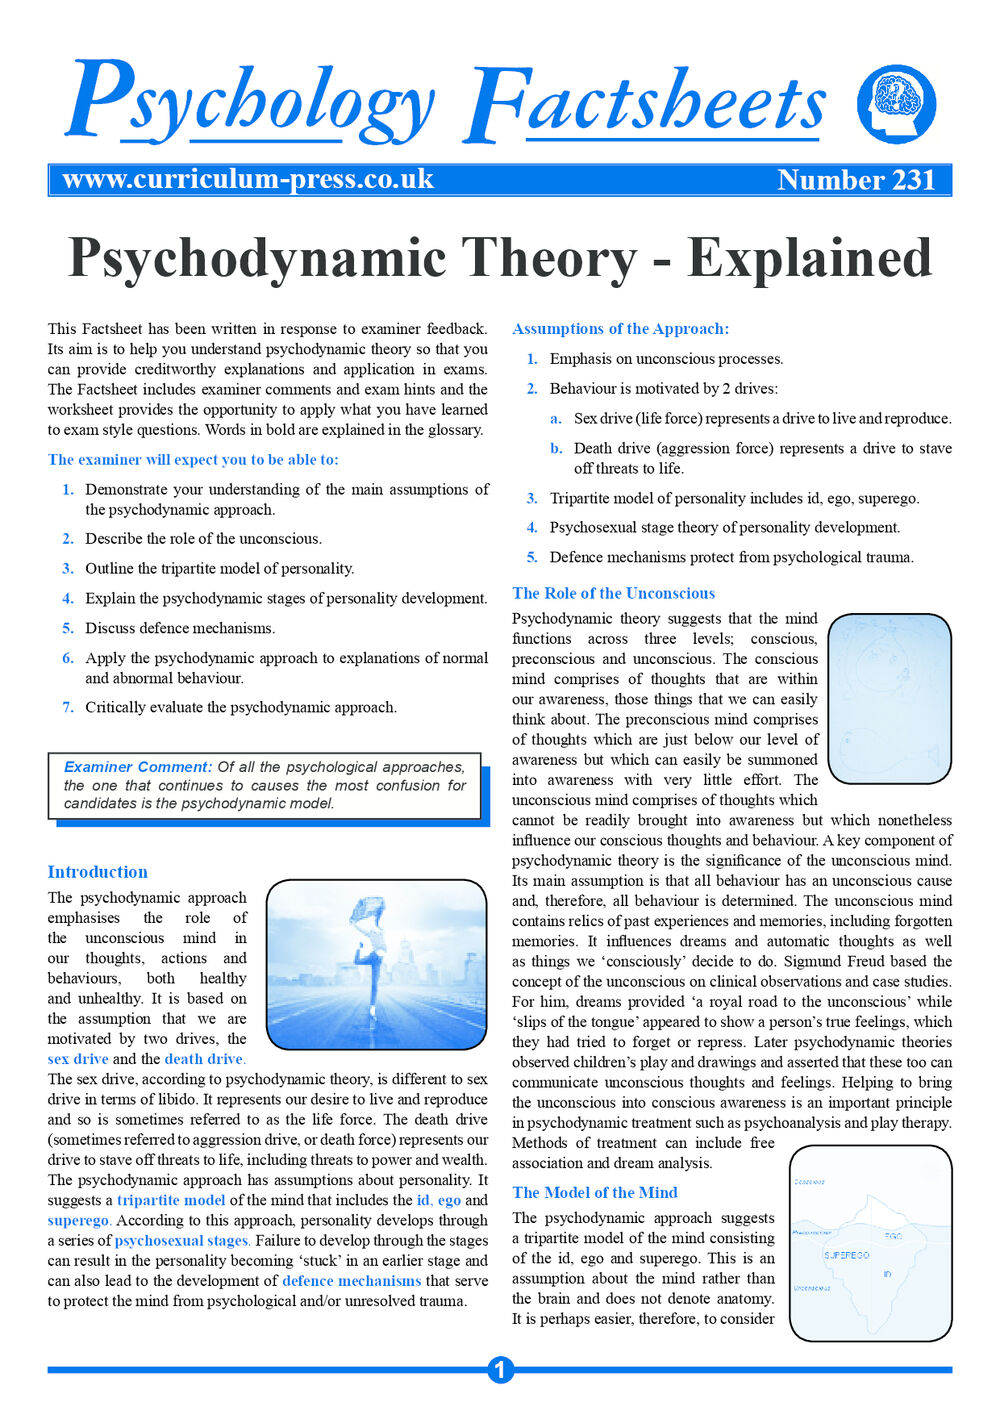 psychodynamic theory - explained